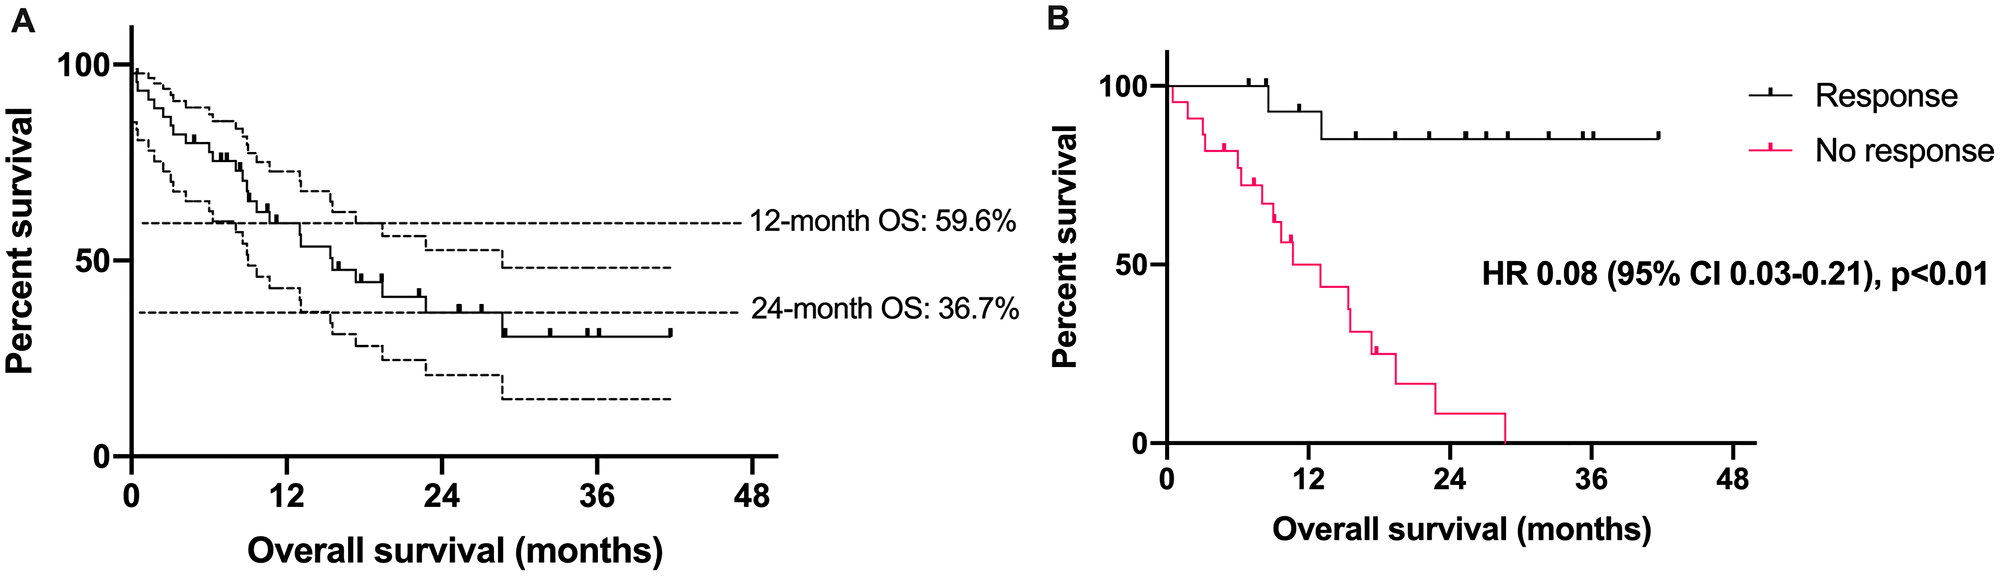 Survival outcomes in patients with Merkel cell carcinoma treated with an immune checkpoint inhibitor.